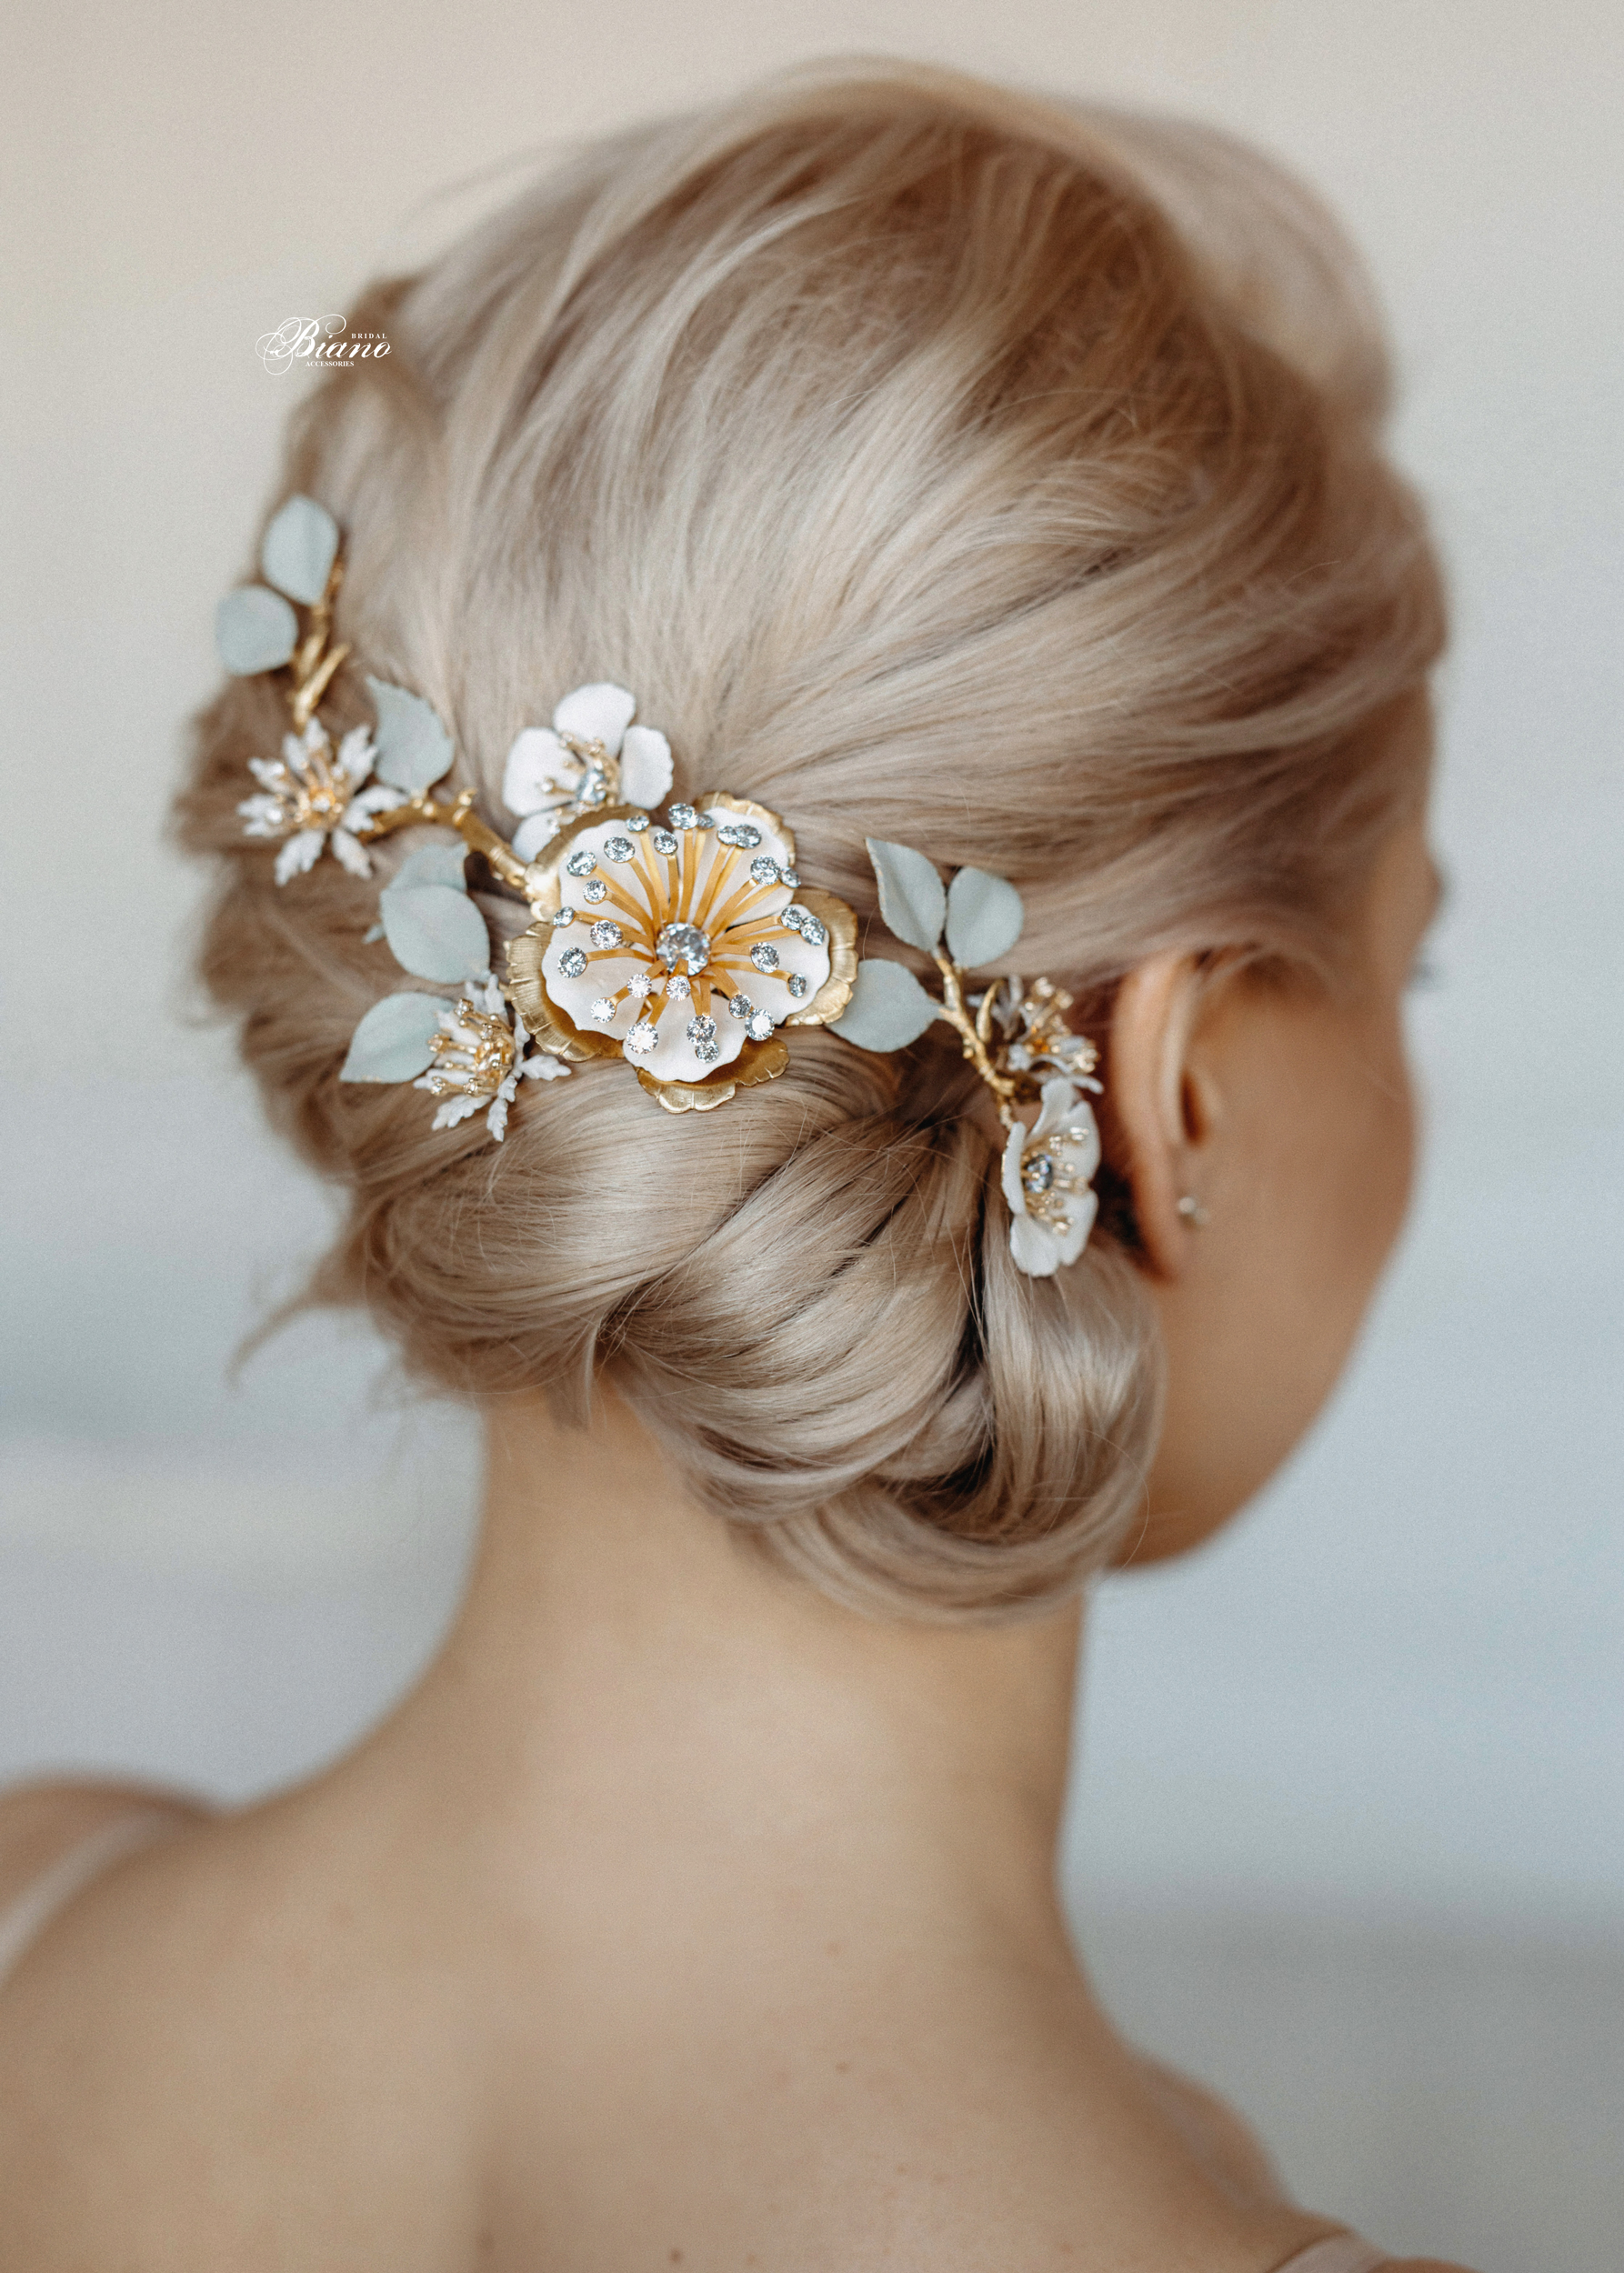 Find your perfect Bridal Hair Comb Floral - Handmade in SwitzerlandUnique DesignPossibility to Rush OrdersFree Shipping WorldwideCustomisable OrdersFast response on your questions